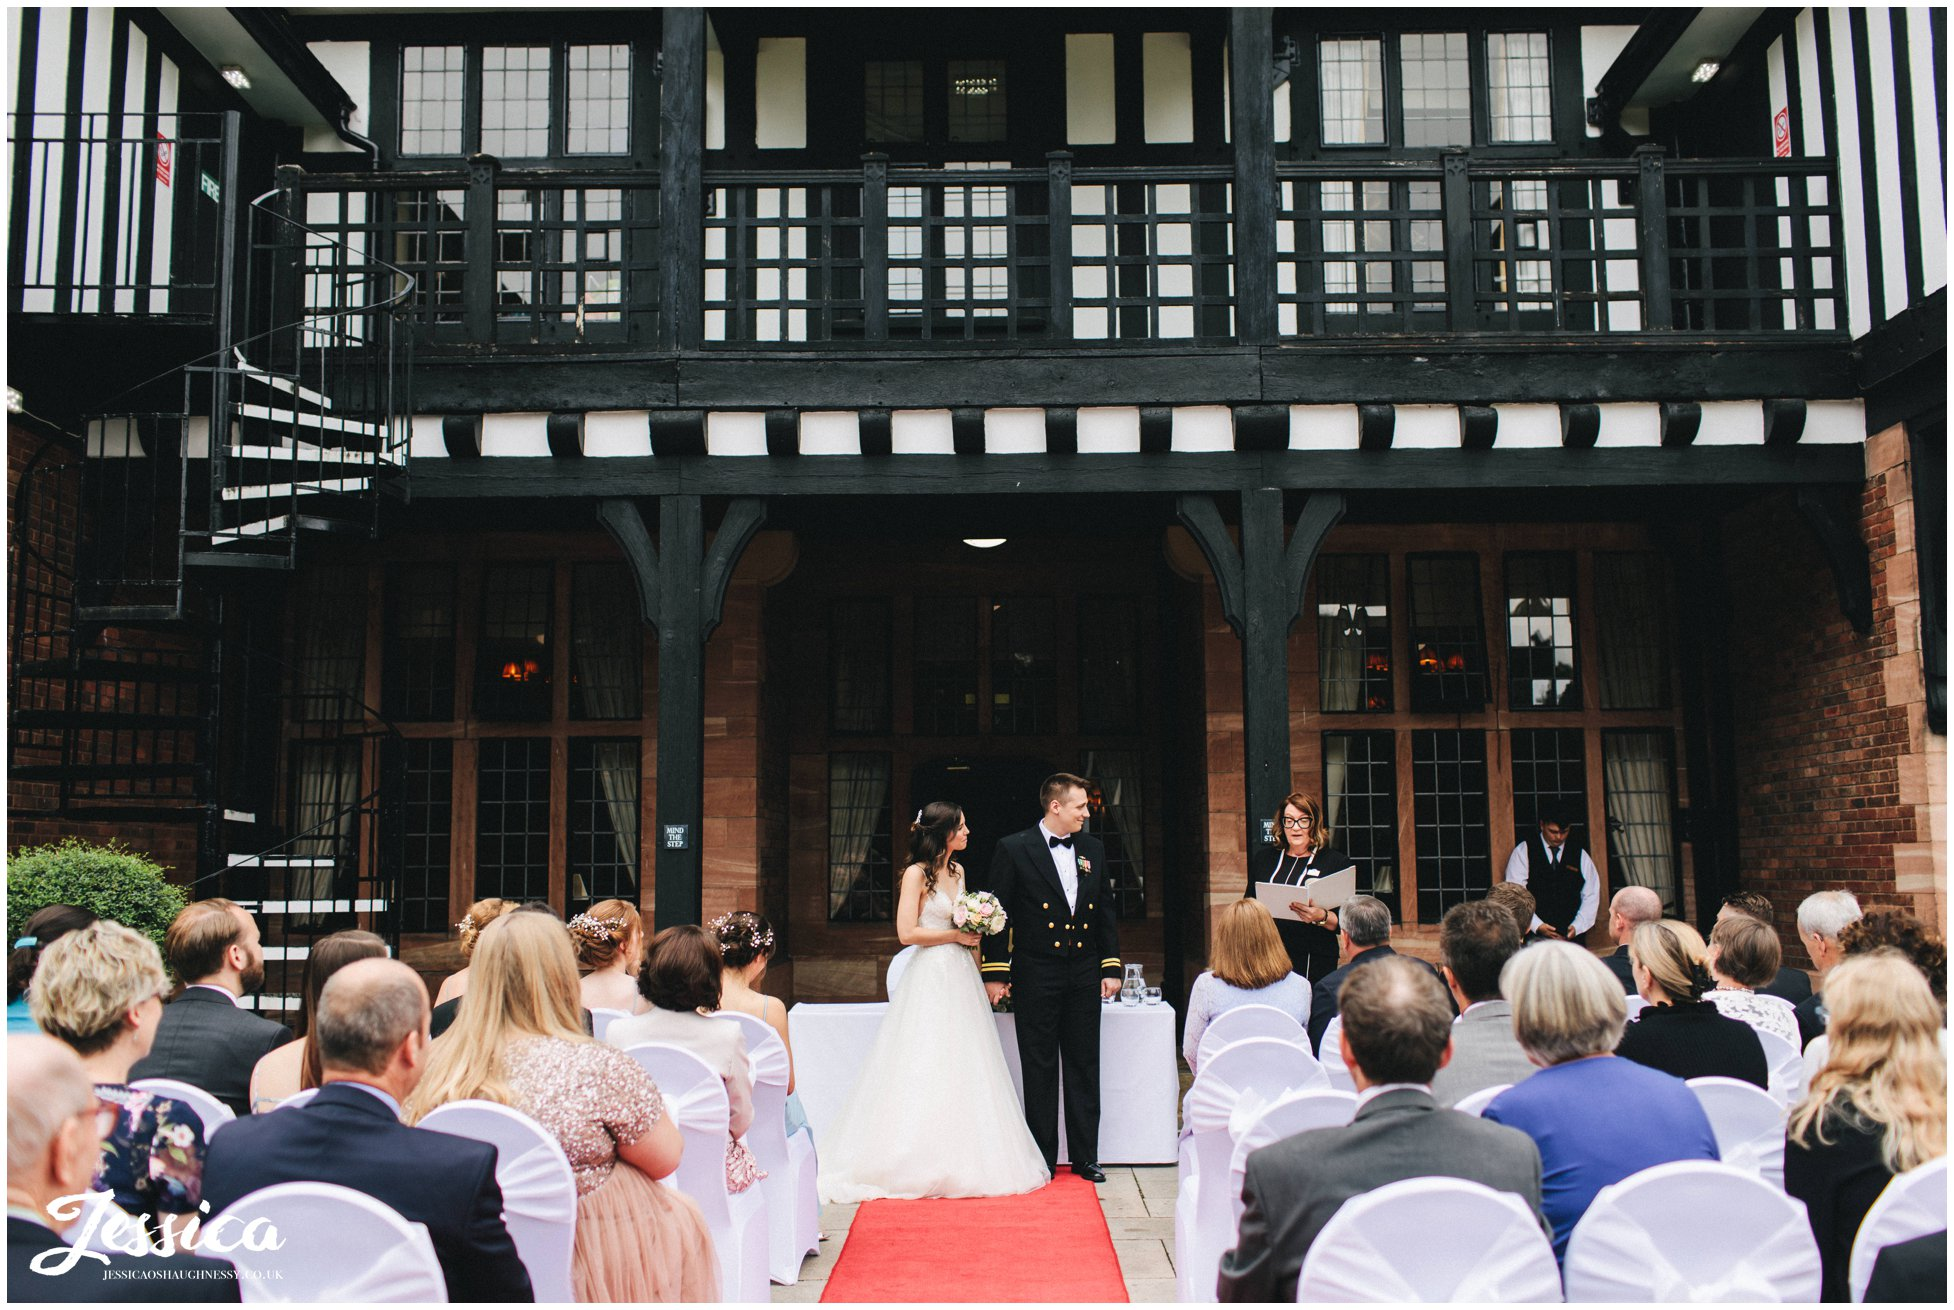 the couple have an outdoor ceremony on the terrace